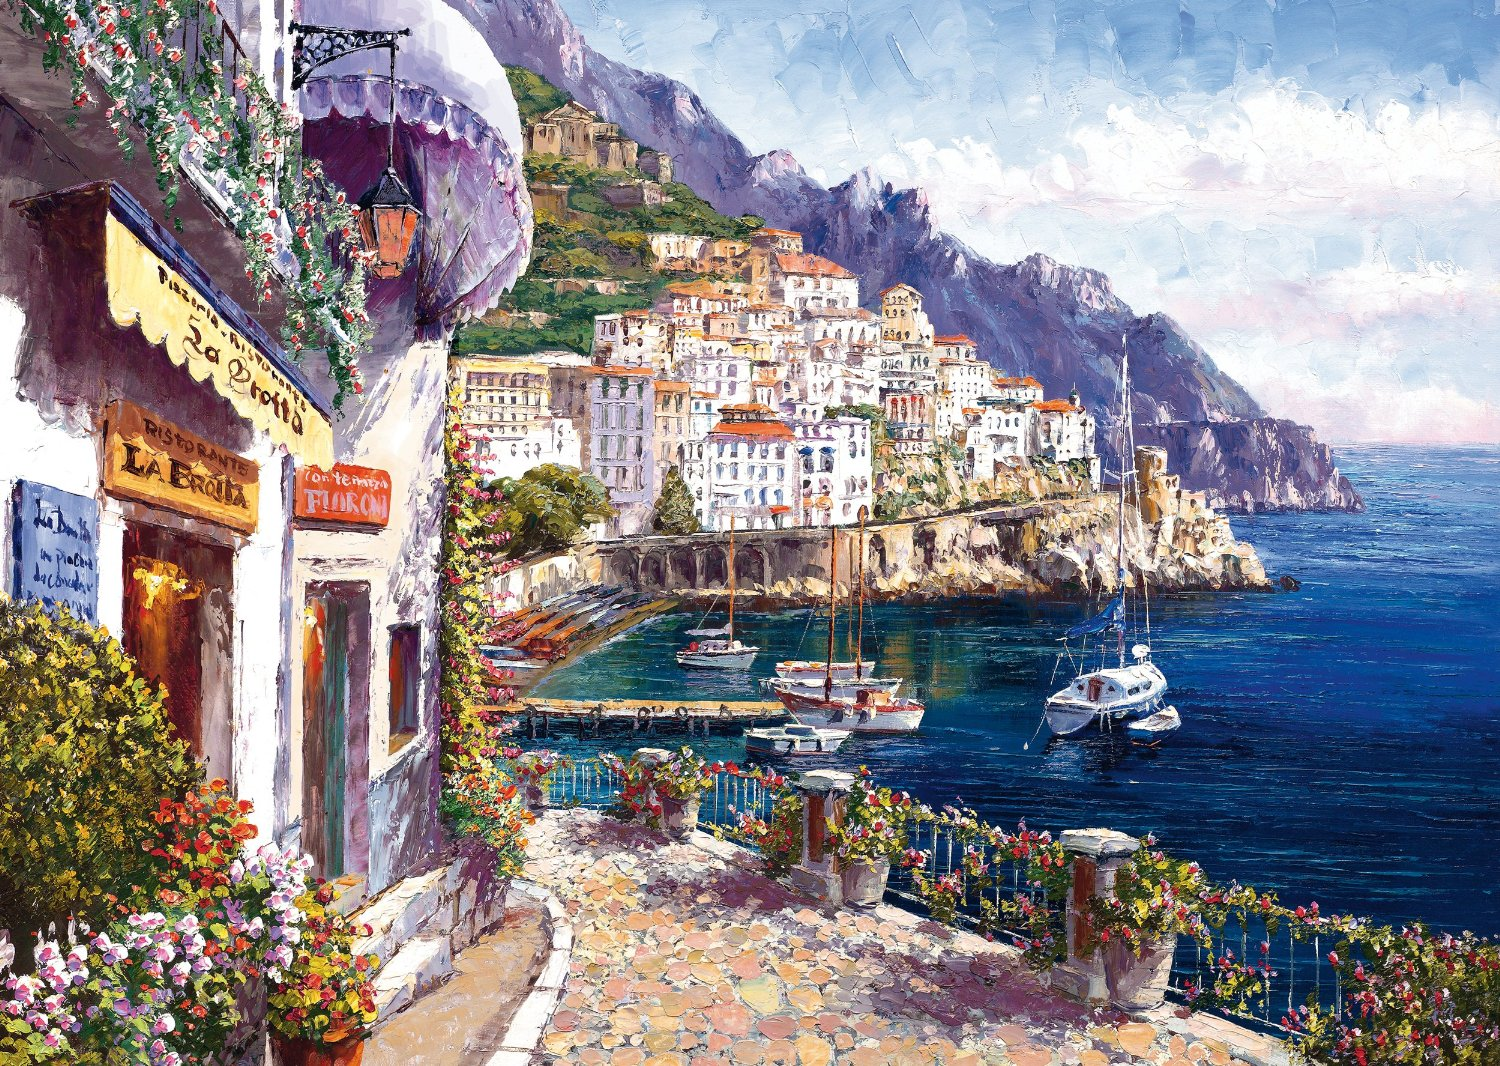 amalfi am nachmittag sam park 2000 teile querformat puzzle schmidt spiele puzzle online kaufen. Black Bedroom Furniture Sets. Home Design Ideas